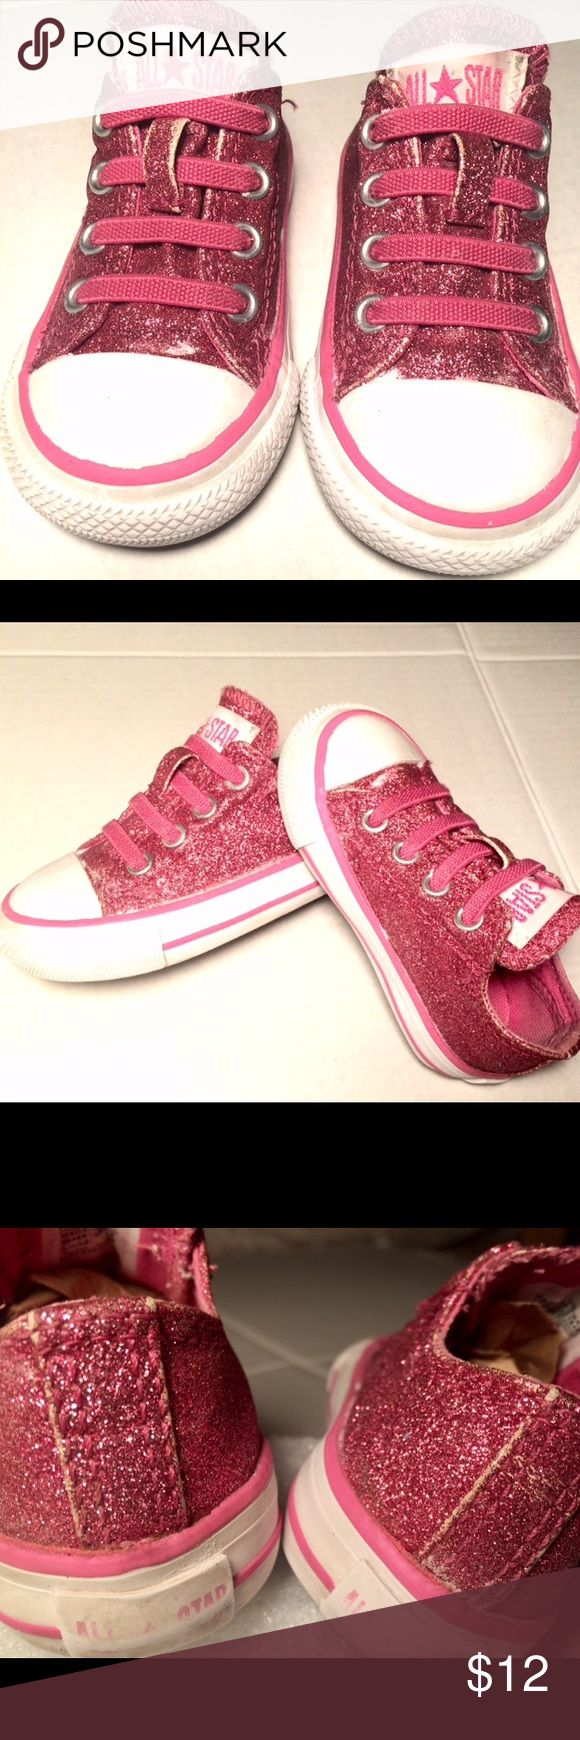 Glitter converse for little ones, size 4 Built with the best quality of any converse, big or small.  Rubber outsoles and bumpers, glitter covered canvas, elastic laces for easy slip on and off.  In EUC Converse Shoes Sneakers